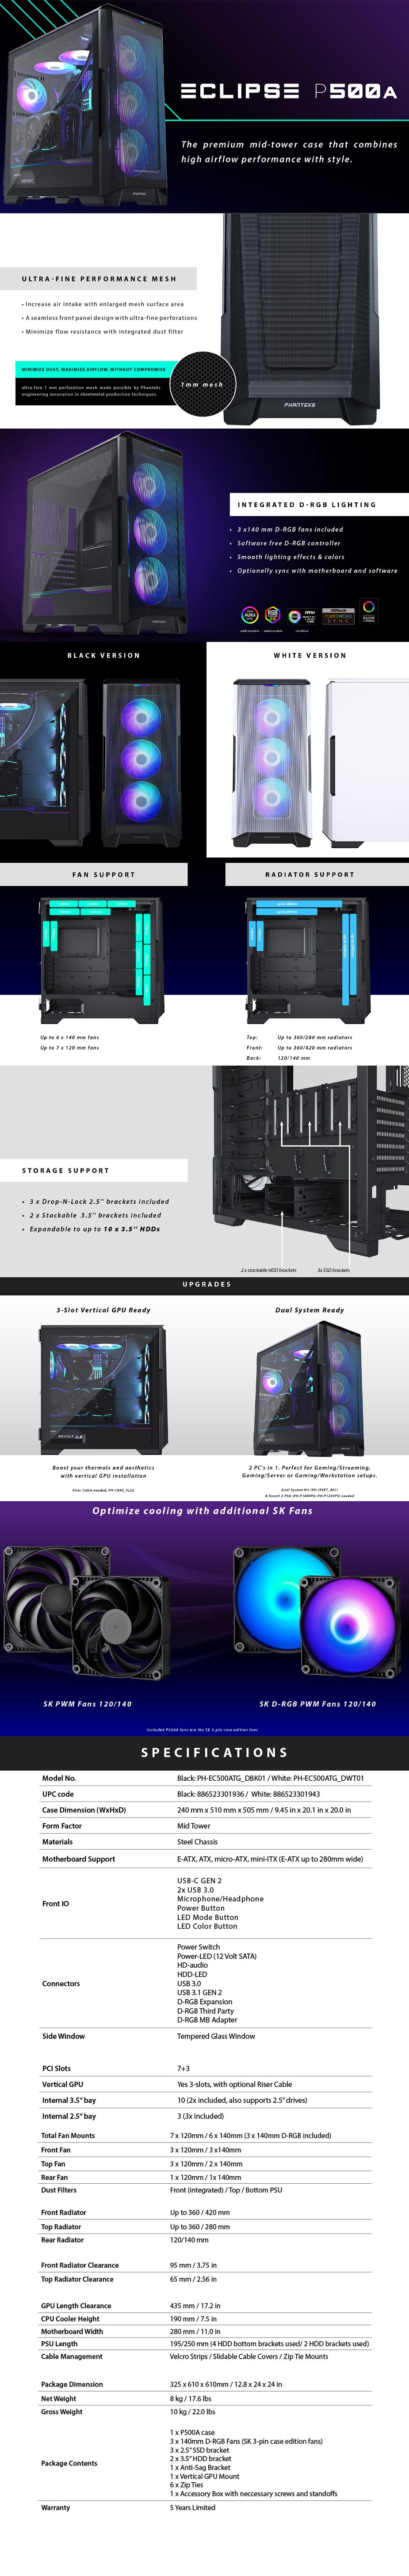 Phanteks Eclipse P500A Airflow D-RGB Tempered Glass Mid-Tower ATX Case - Black - Overview 1